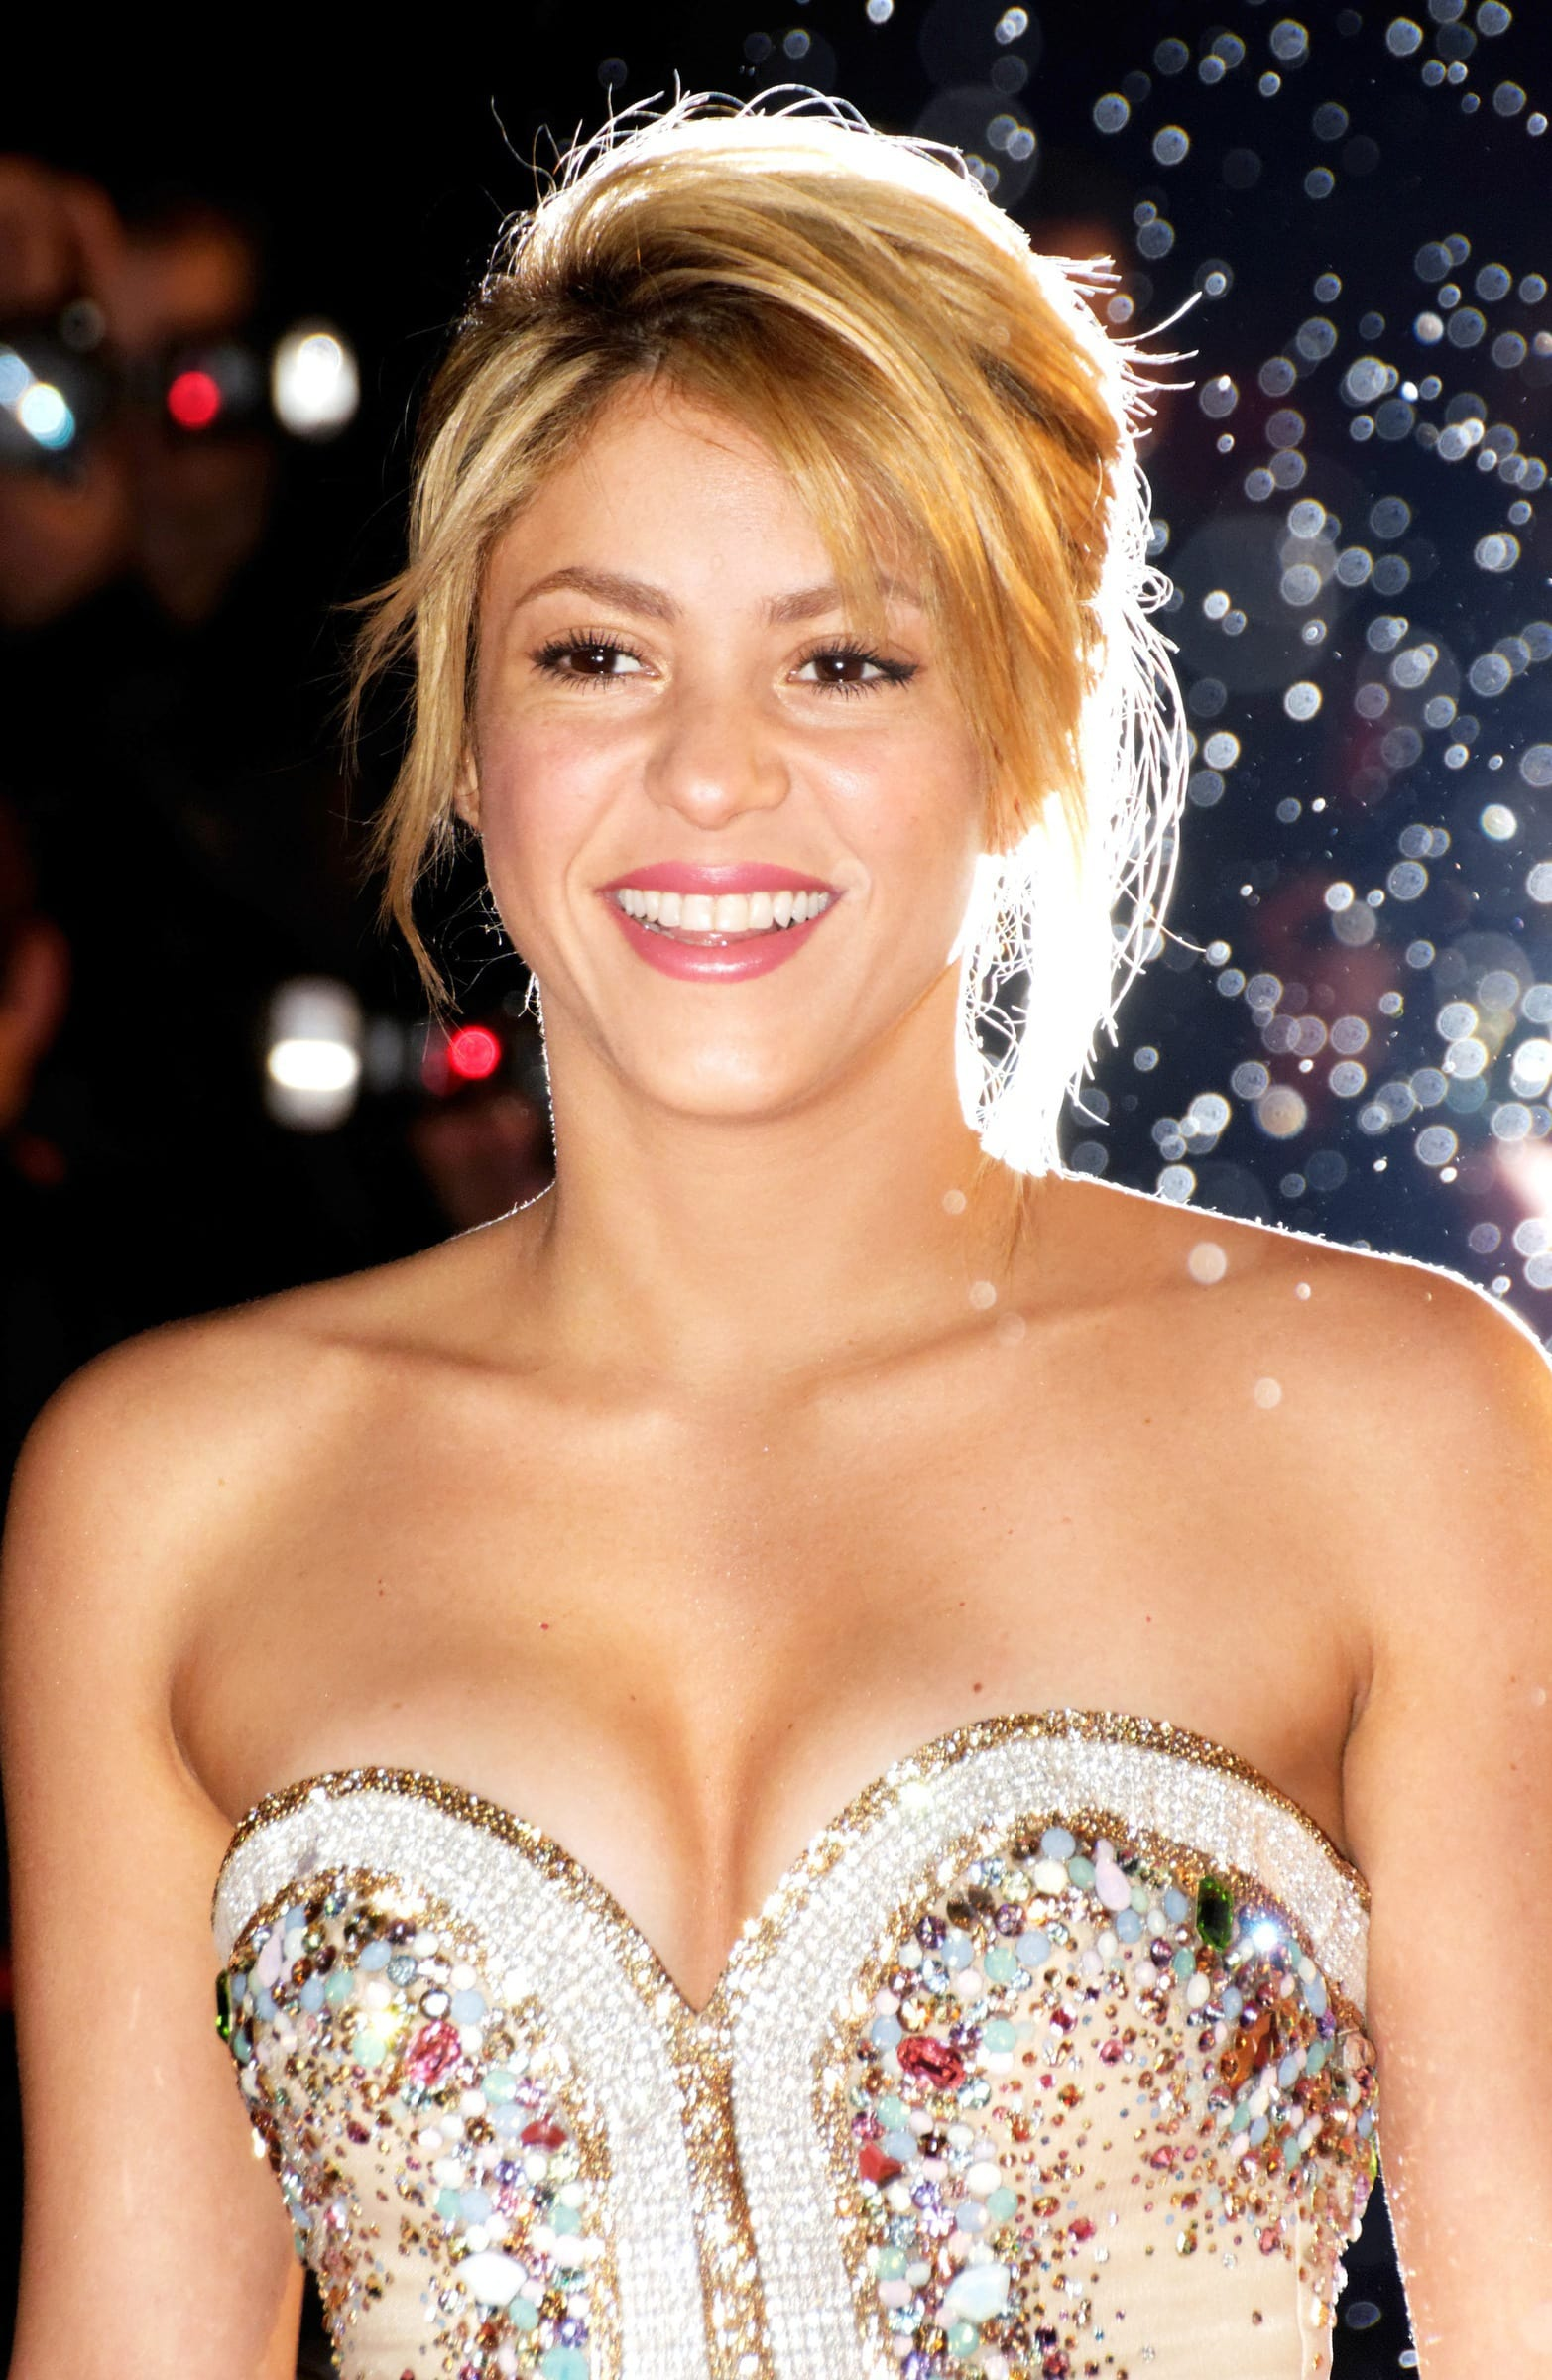 Shakira Pregnant With First Child The Hollywood Gossip